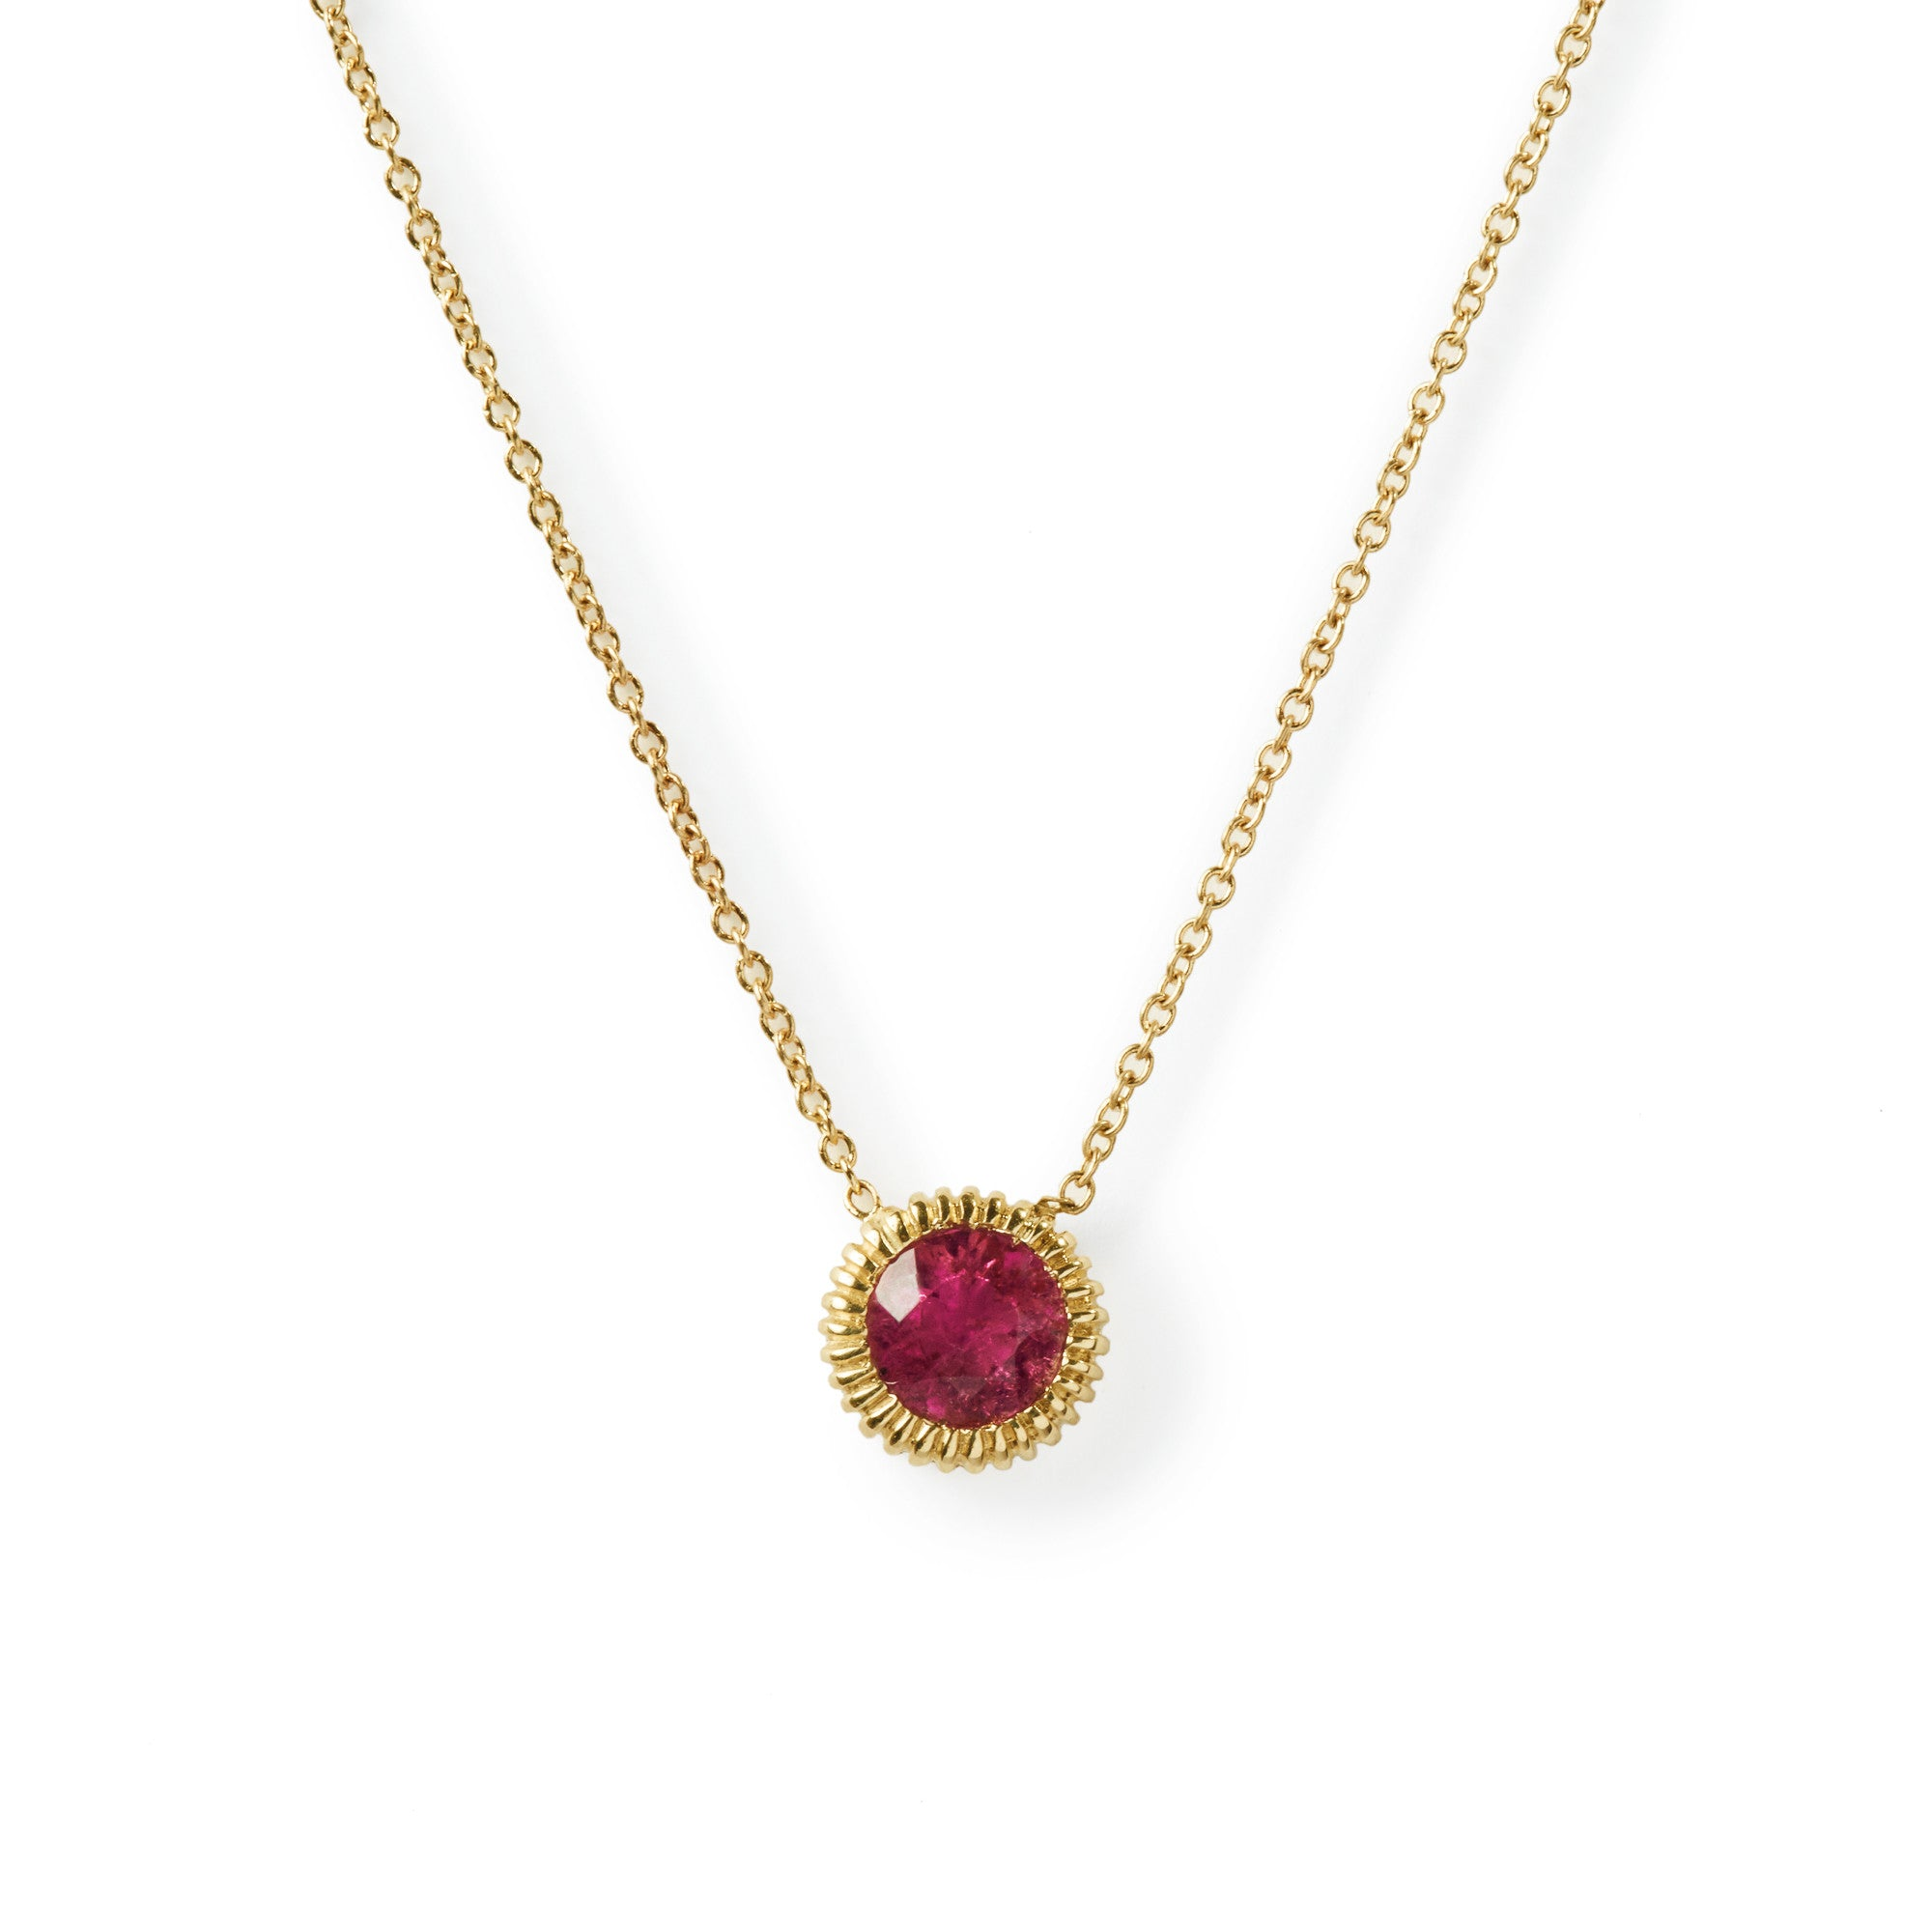 sale org side necklaces at antique jewelry carat gold victorian wynn j tourmaline id for pink pendant john henry